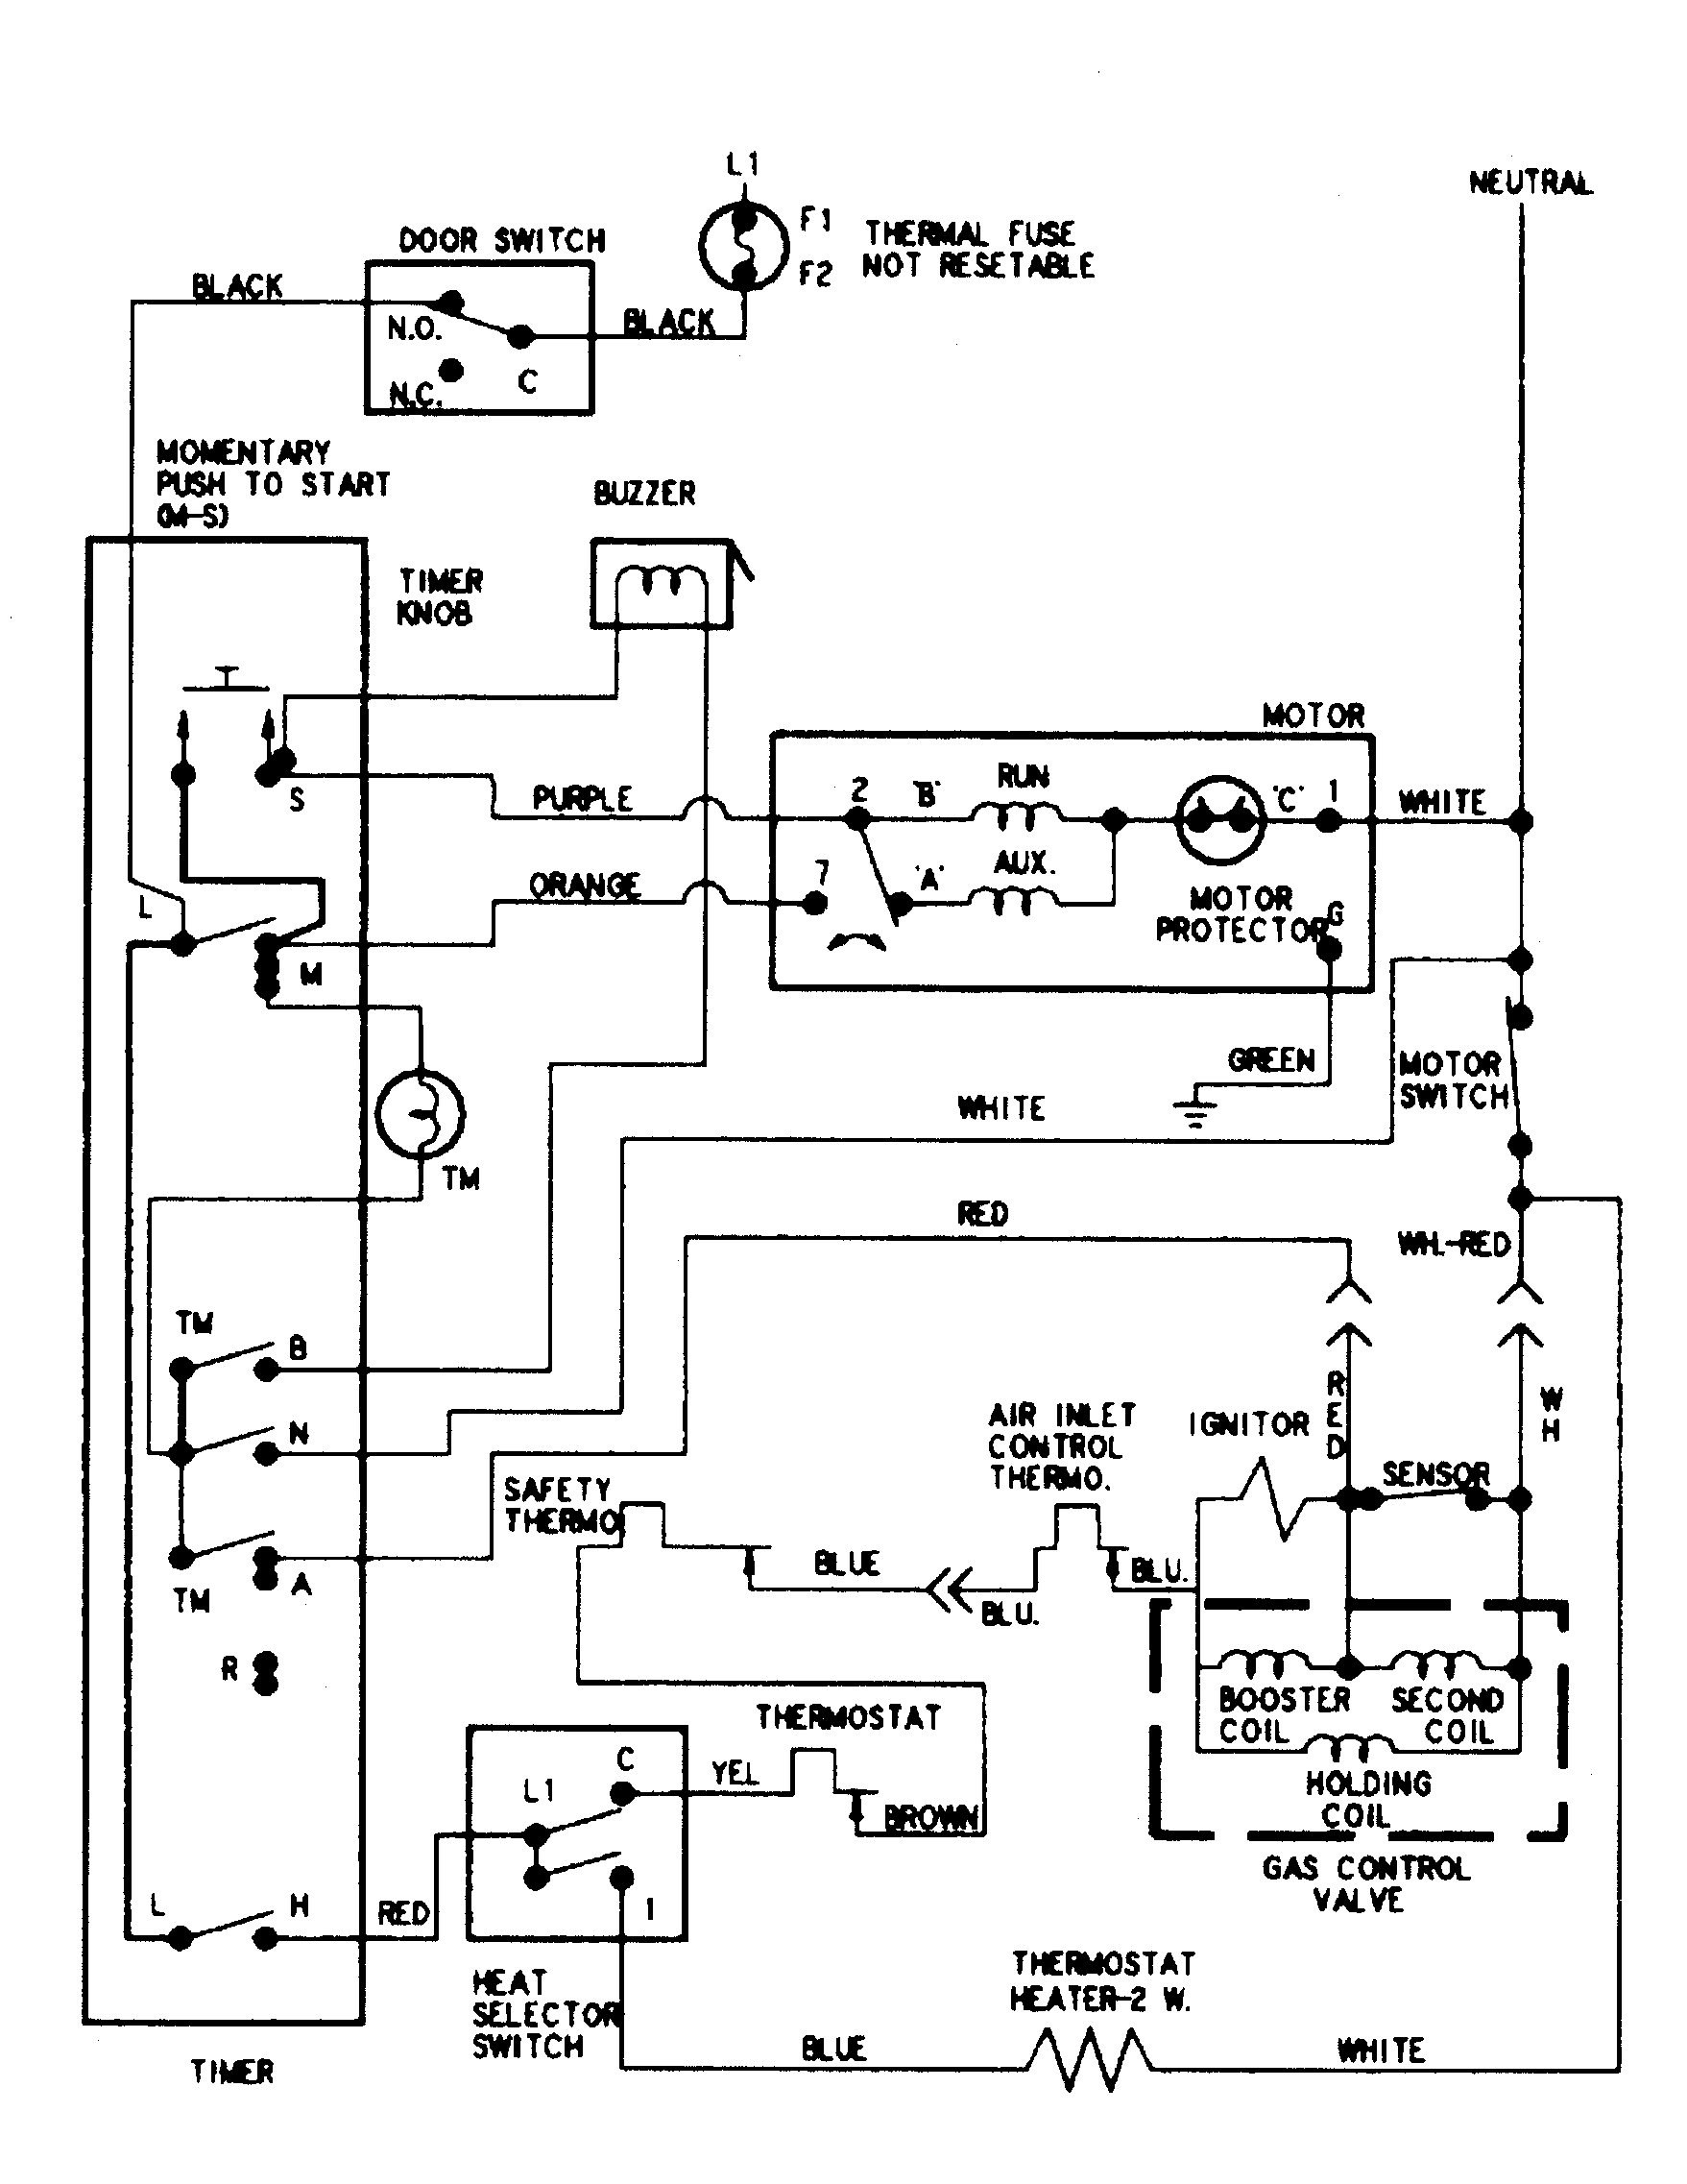 M0406029 00006 diagrams 800402 inglis dryer wiring diagram sample wiring crosley dryer wiring diagram at alyssarenee.co